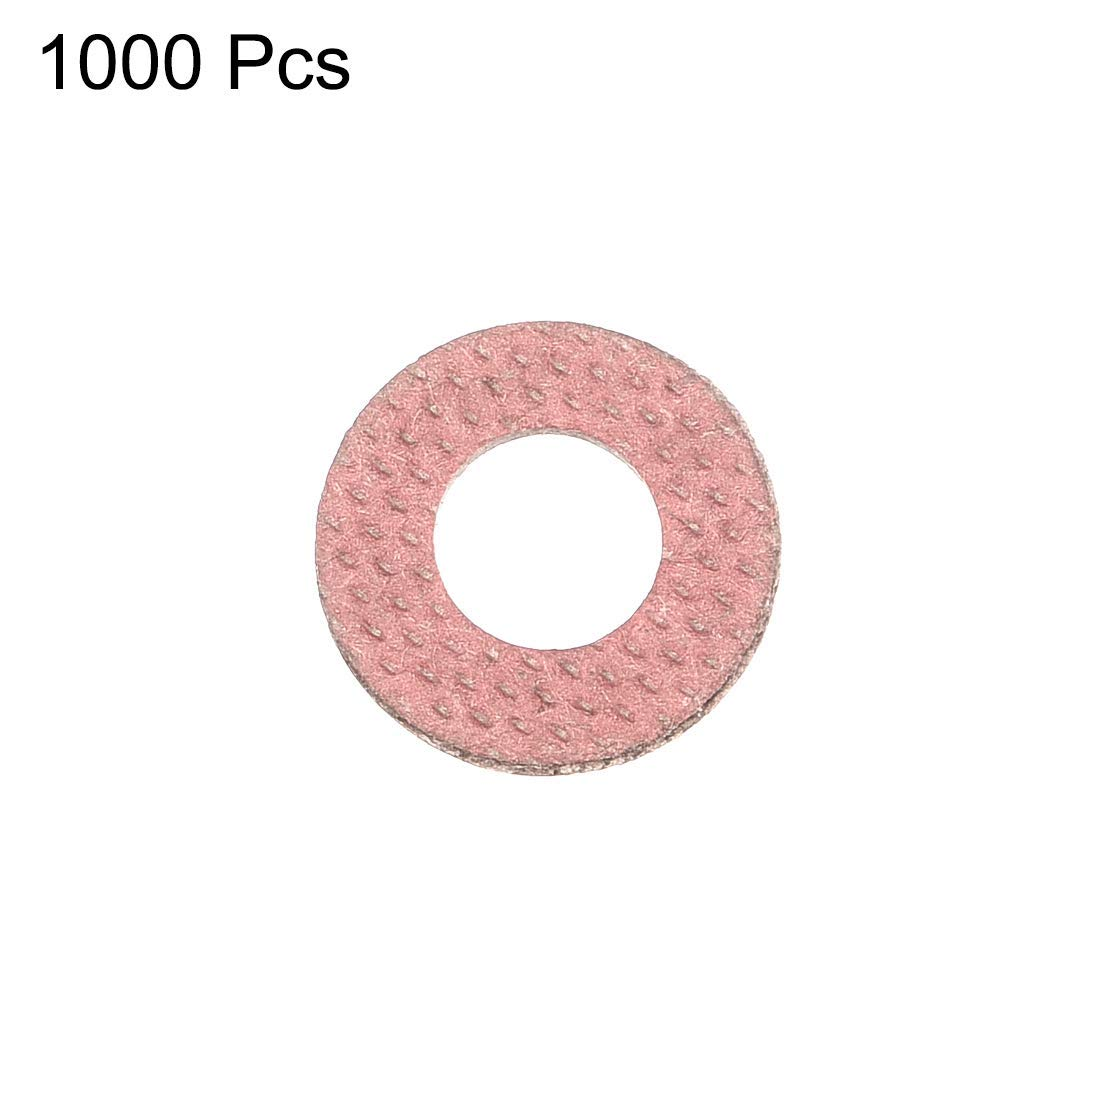 Insulating Washer 500 Pieces red Vulcanized Fiber Washer 6 mm x 12 mm x 0.8 mm Insulating Joint for Base Plate